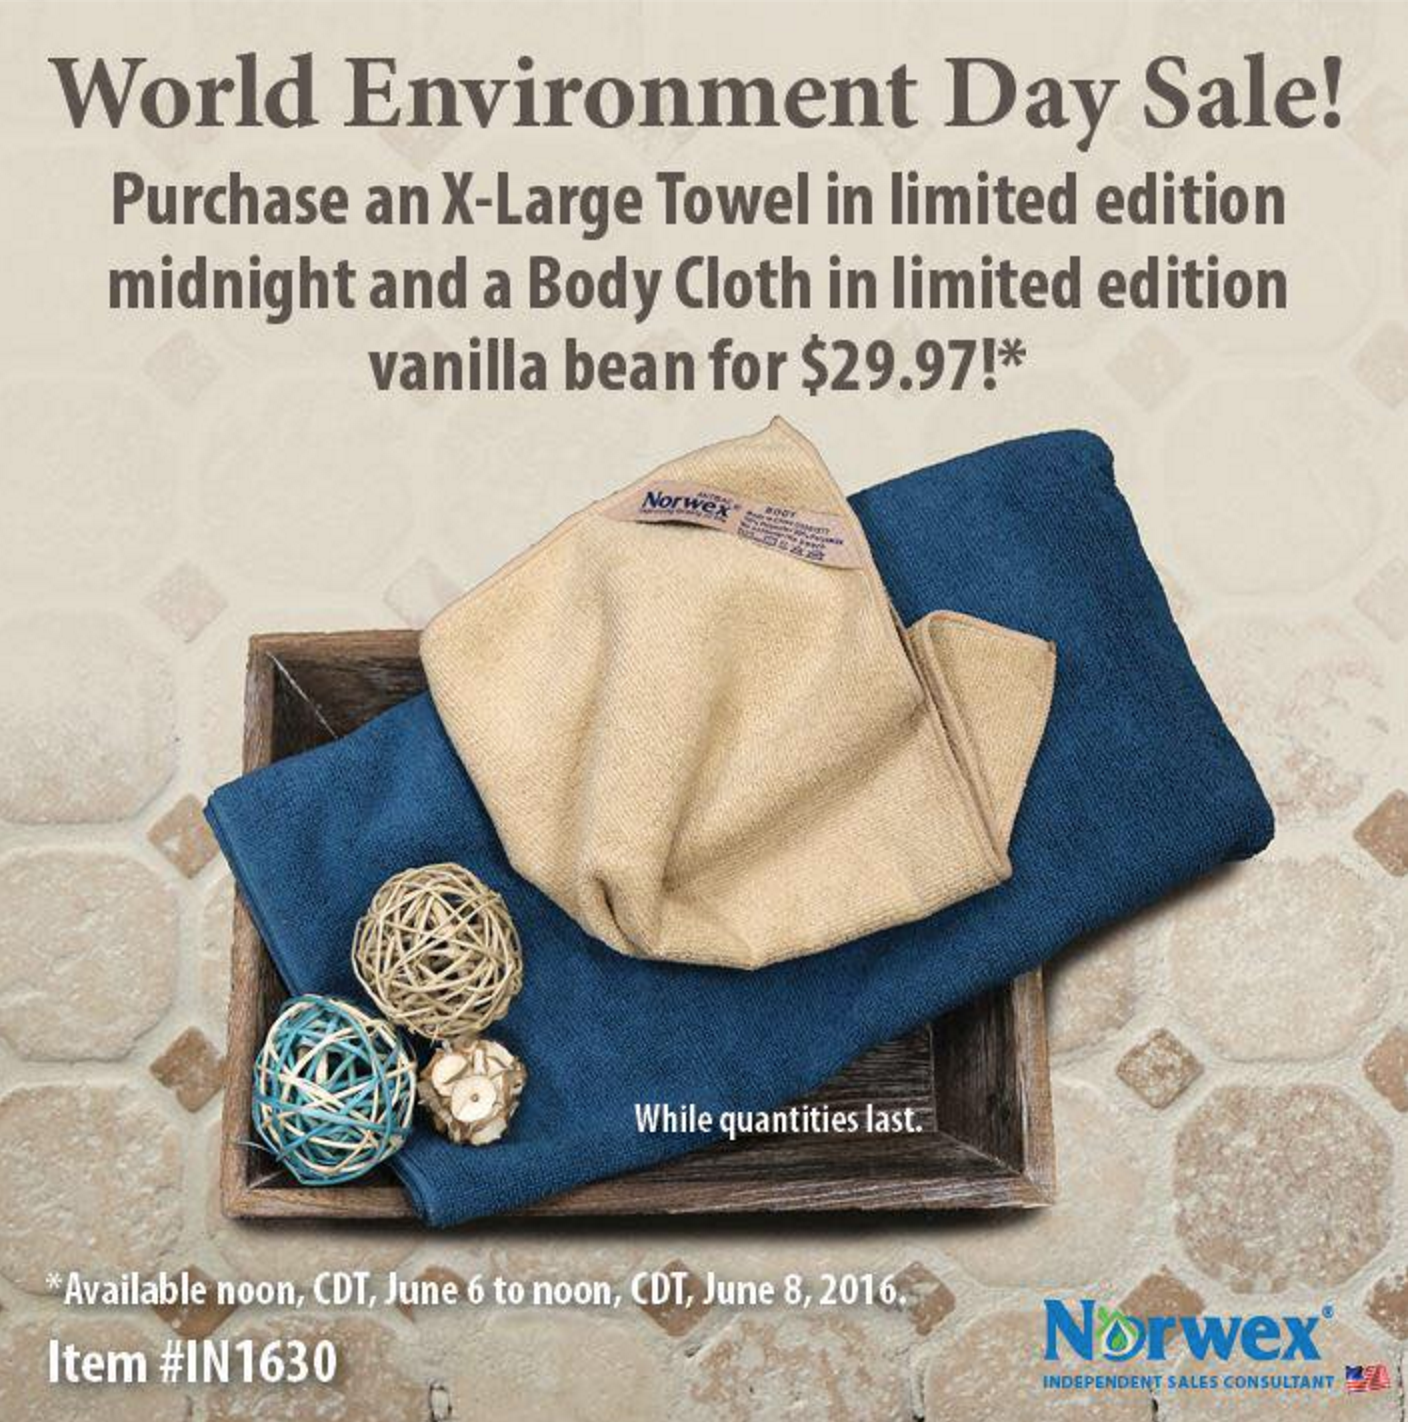 The World's Best Towel + Body Cloth on Sale!